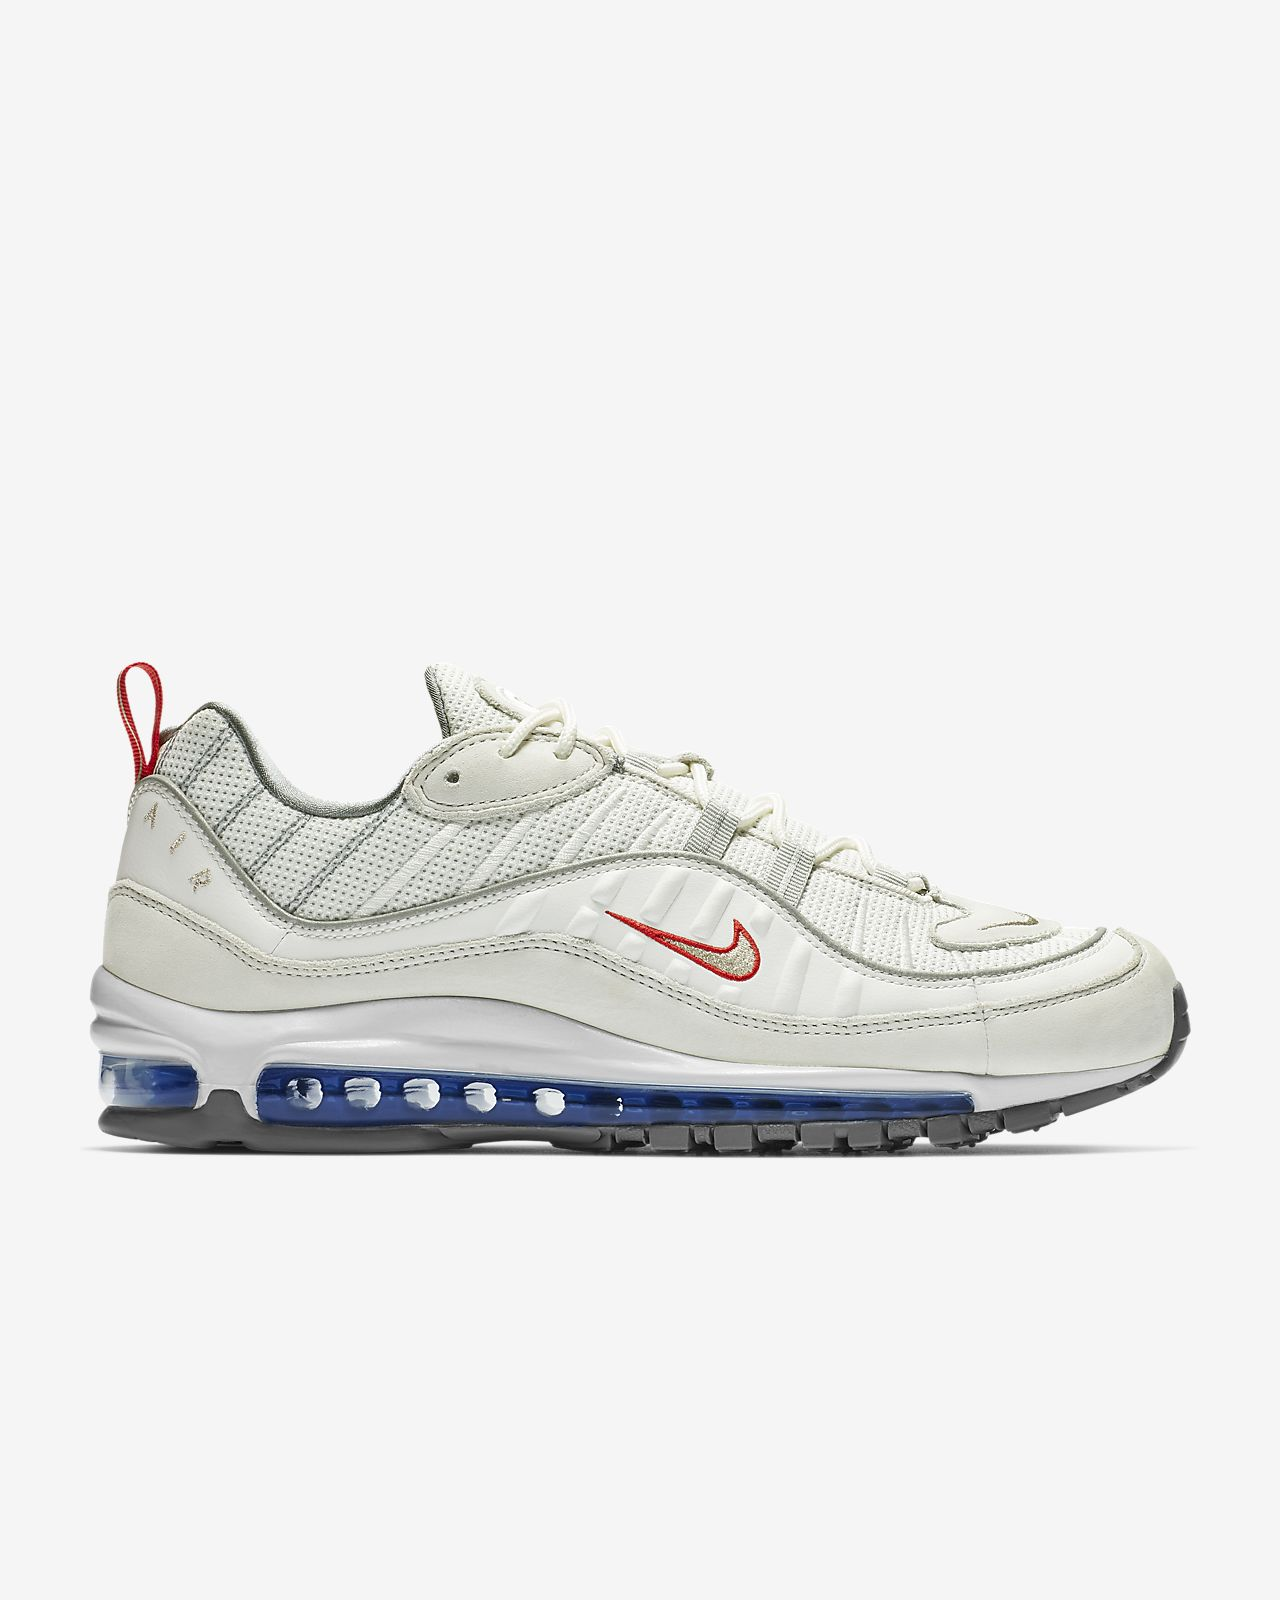 new style d6d7e ab561 Chaussure Nike Air Max 98 pour Homme. Nike.com MA